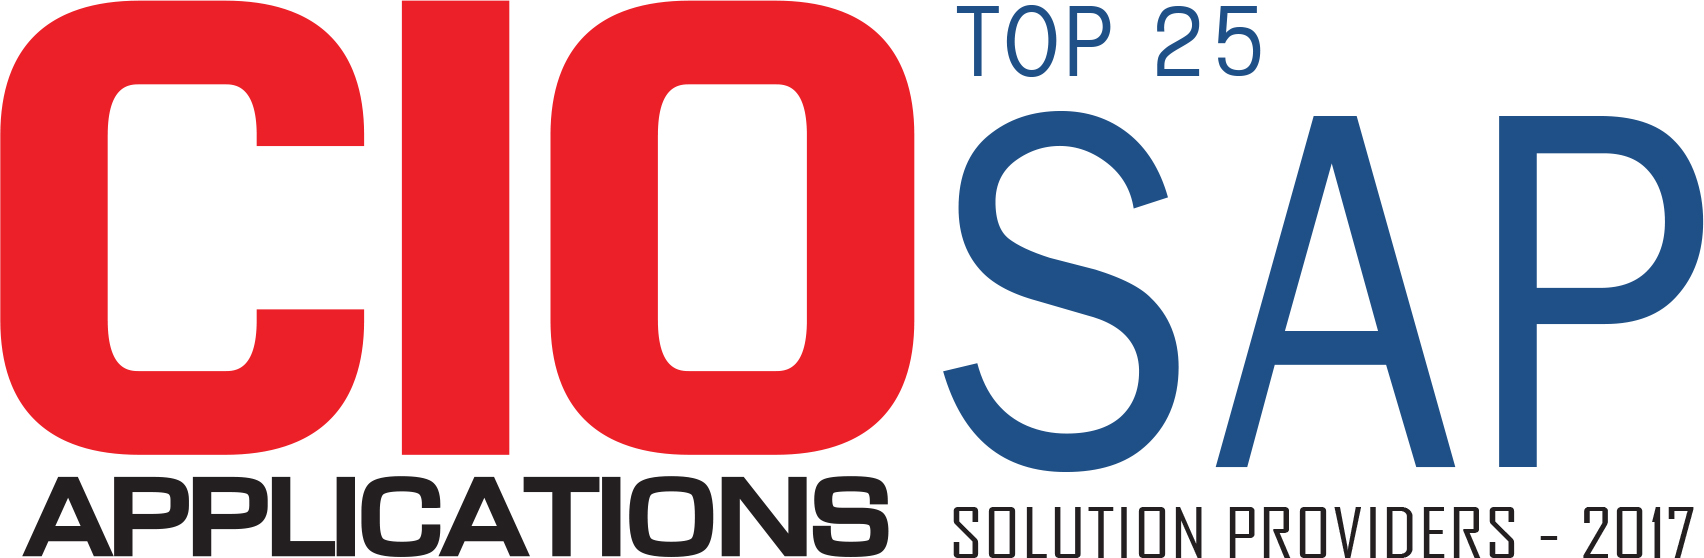 Top 25 SAP Solution Providers Companies - 2017